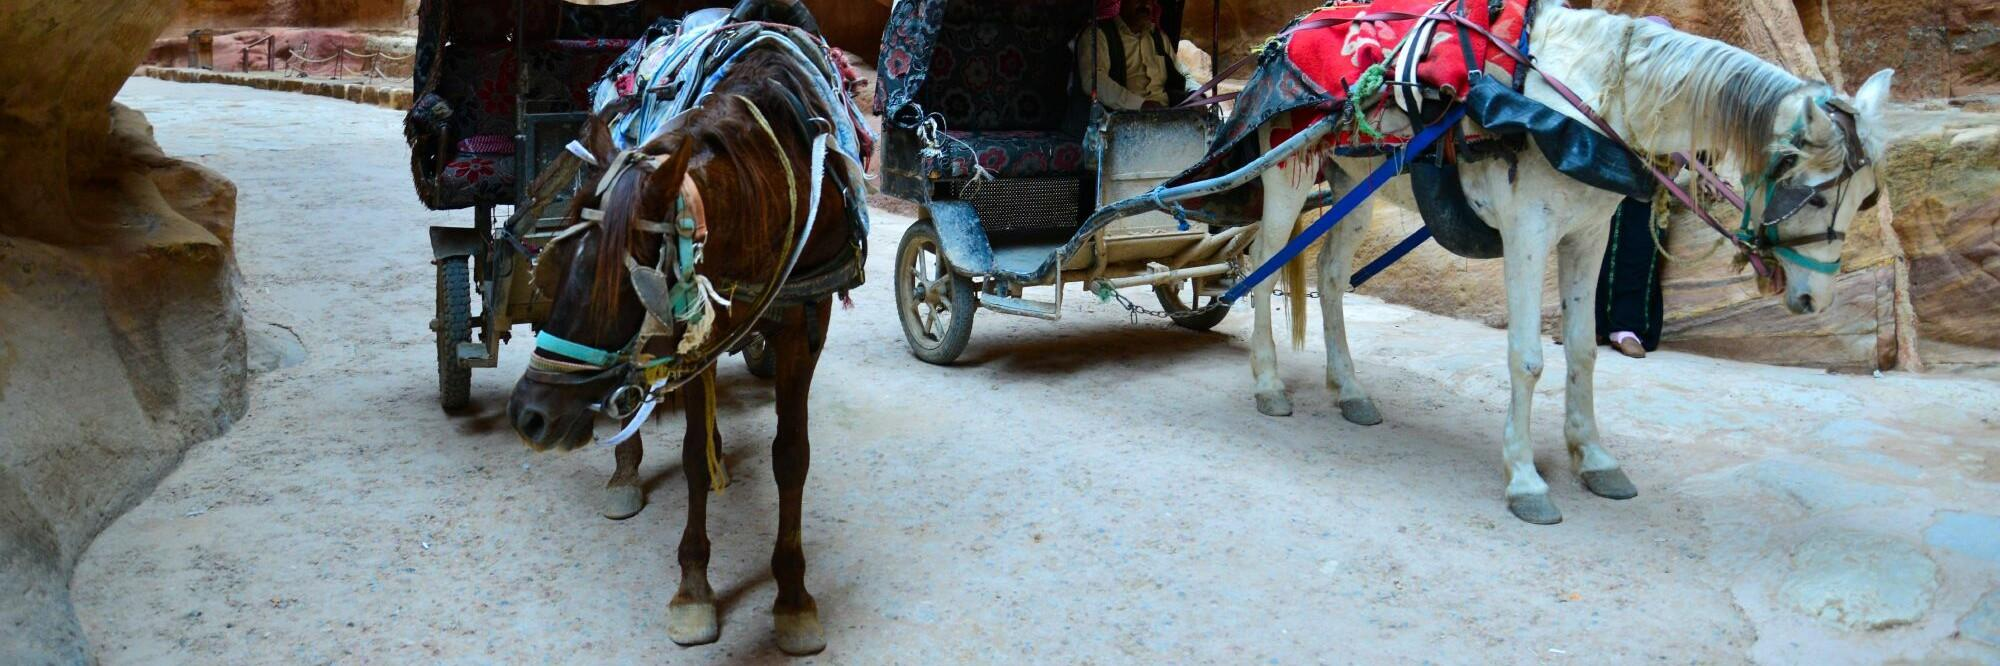 Helping the working horses of Petra